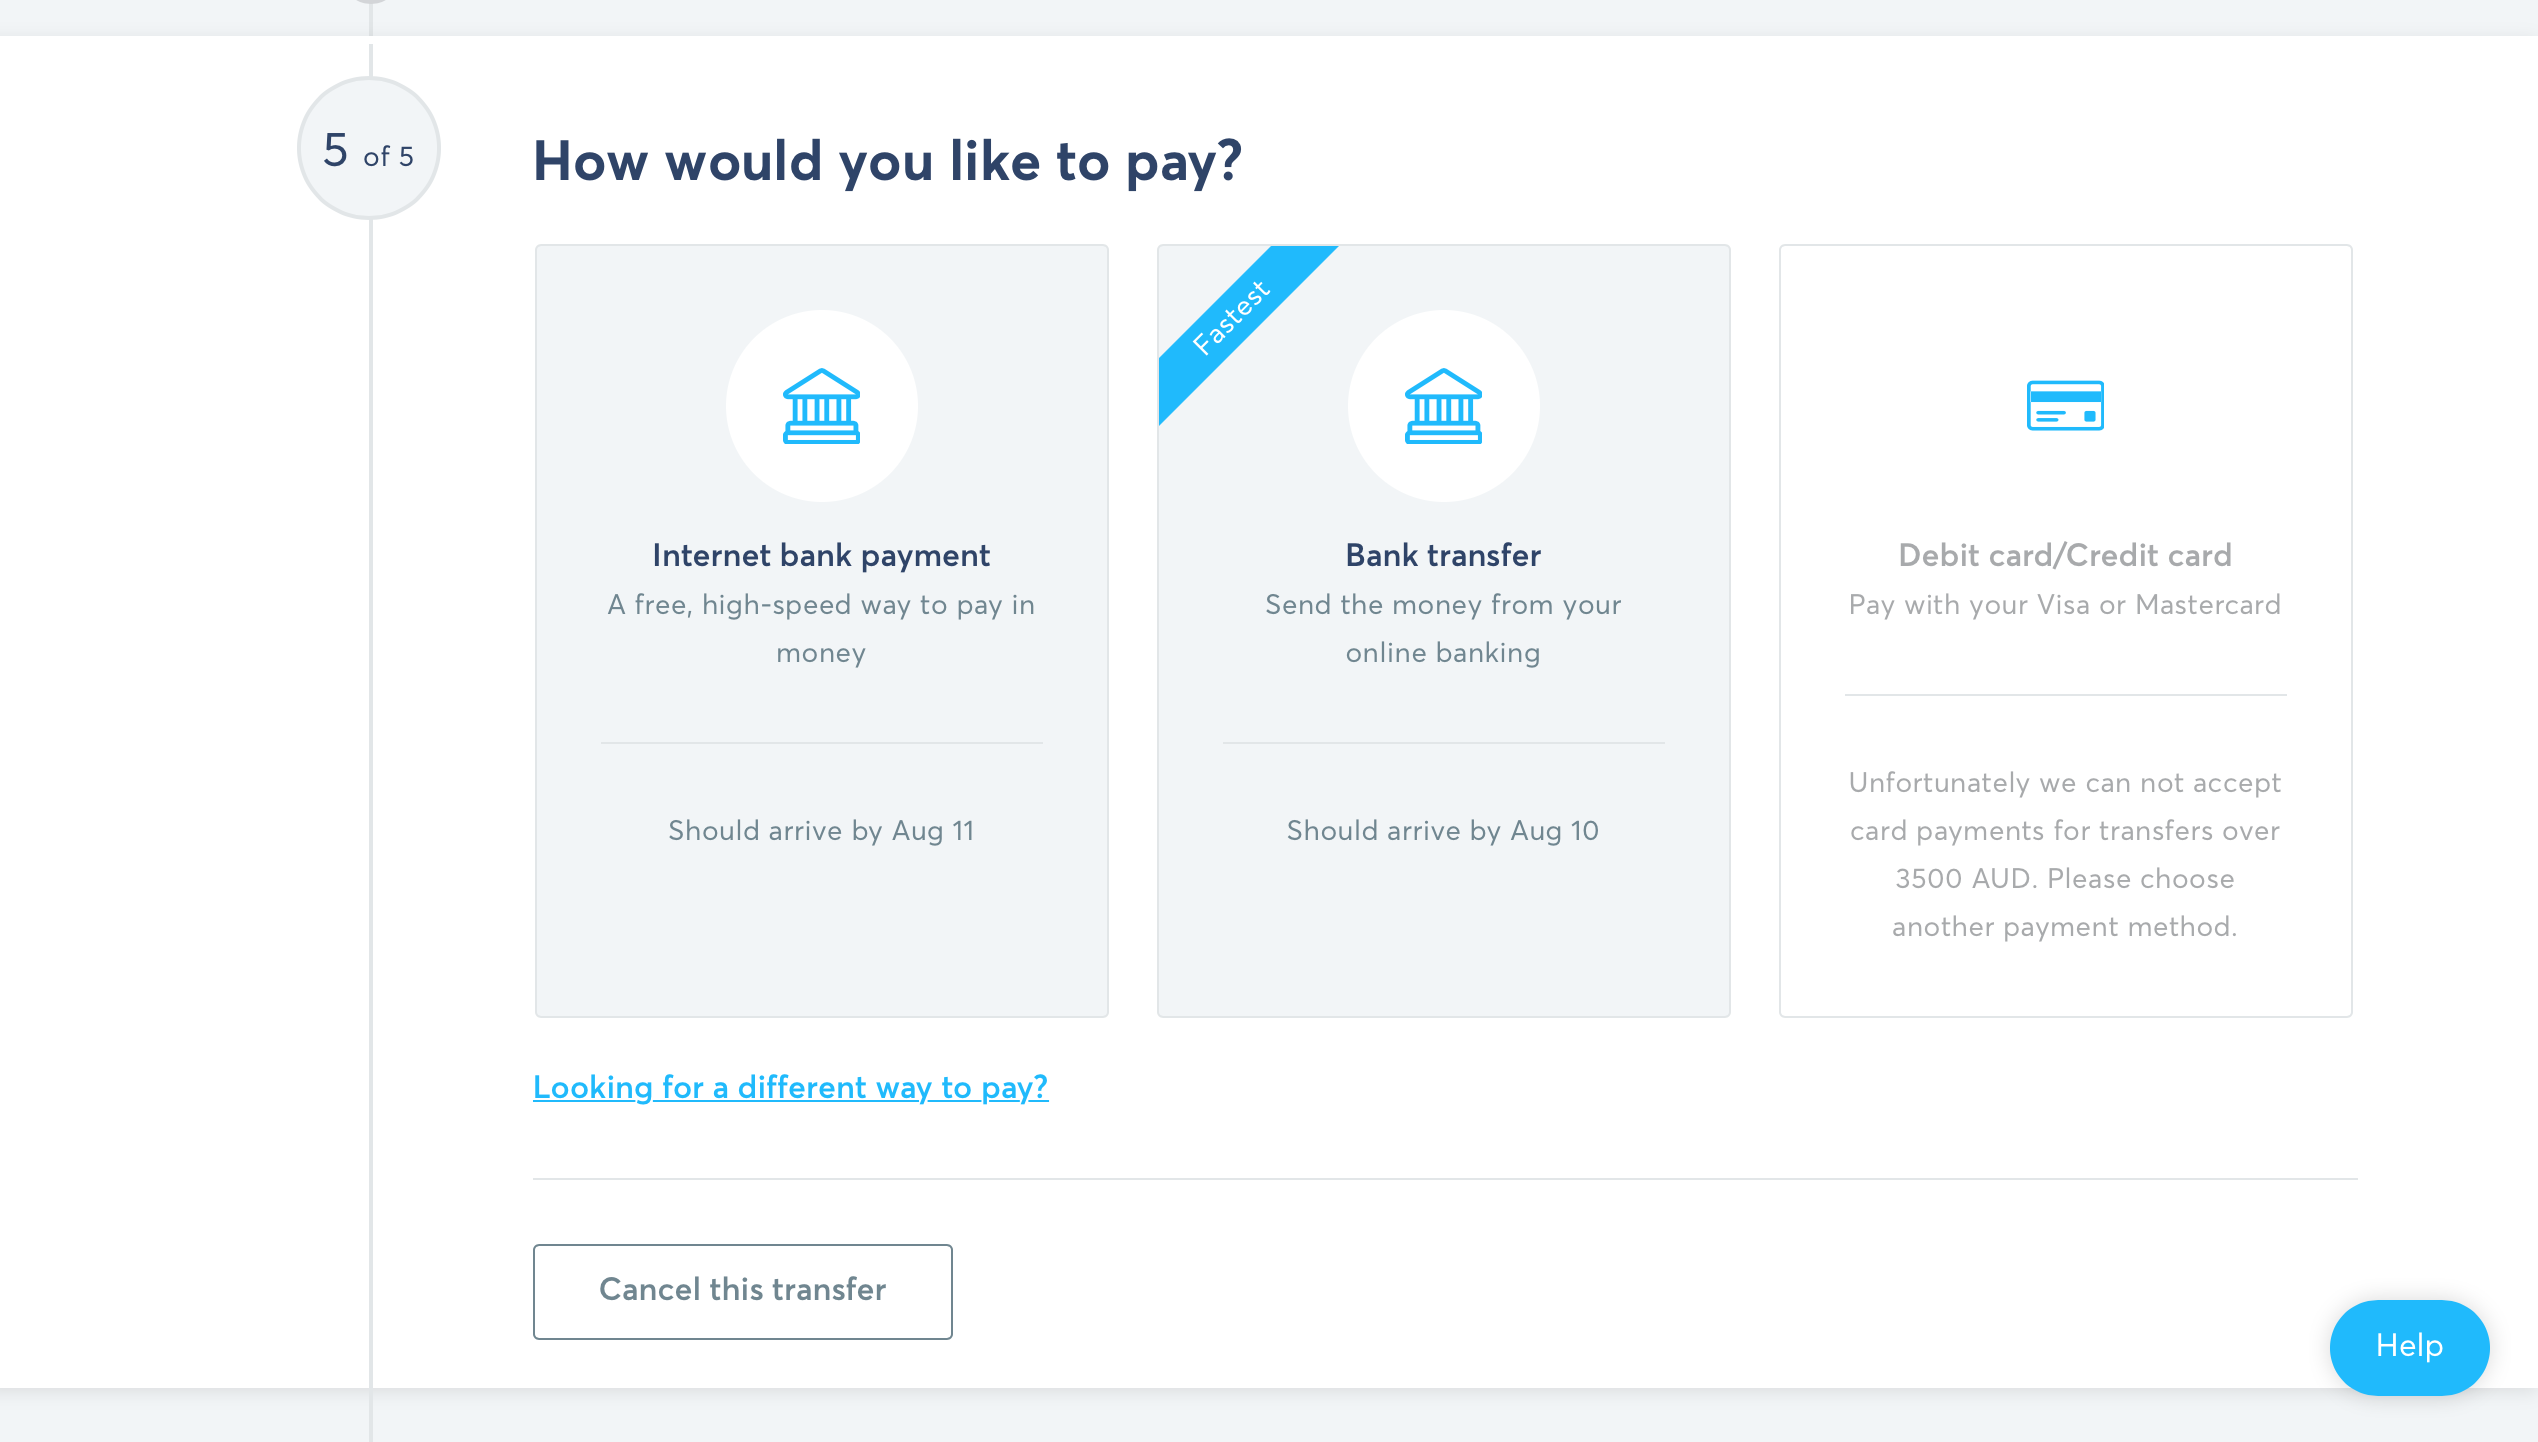 Screenshot of different ways you can pay online internet bank payment, bank transfer, debit card, credit card